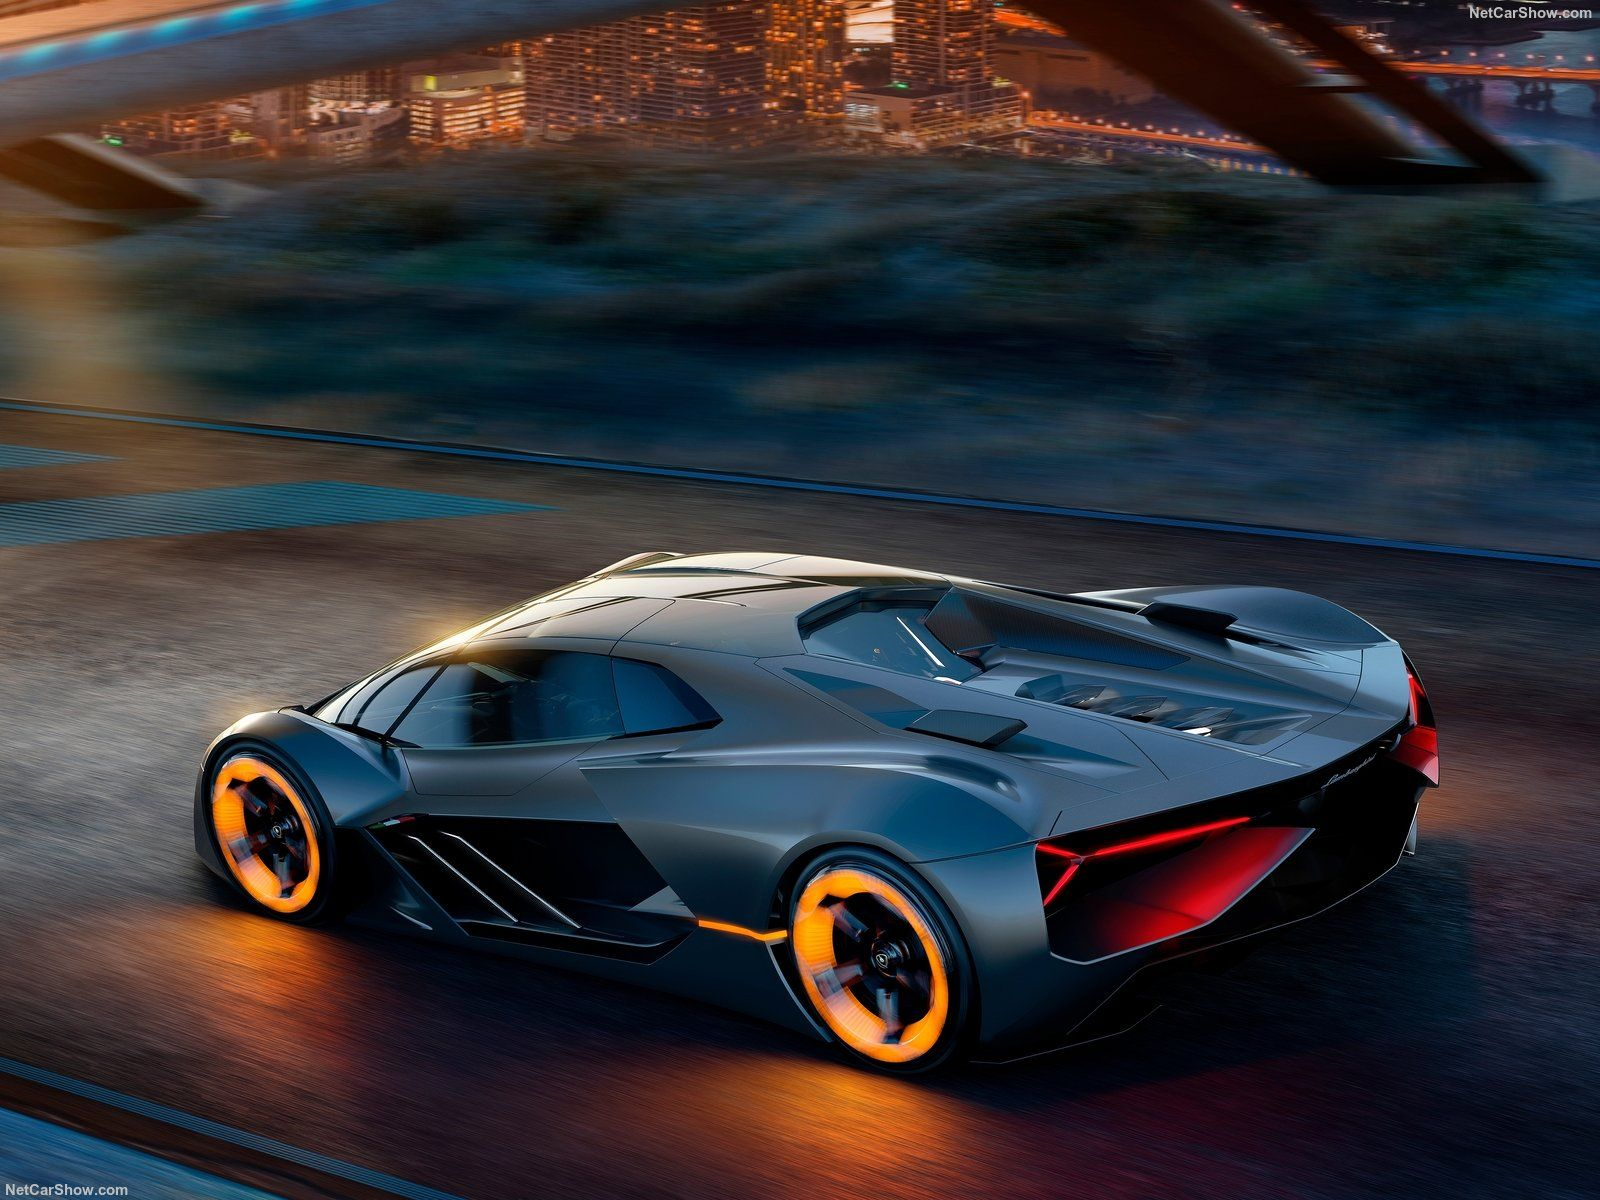 Pin By Juan Pablo Atehortua On Cars All Electric Cars Super Sport Cars Lamborghini Cars